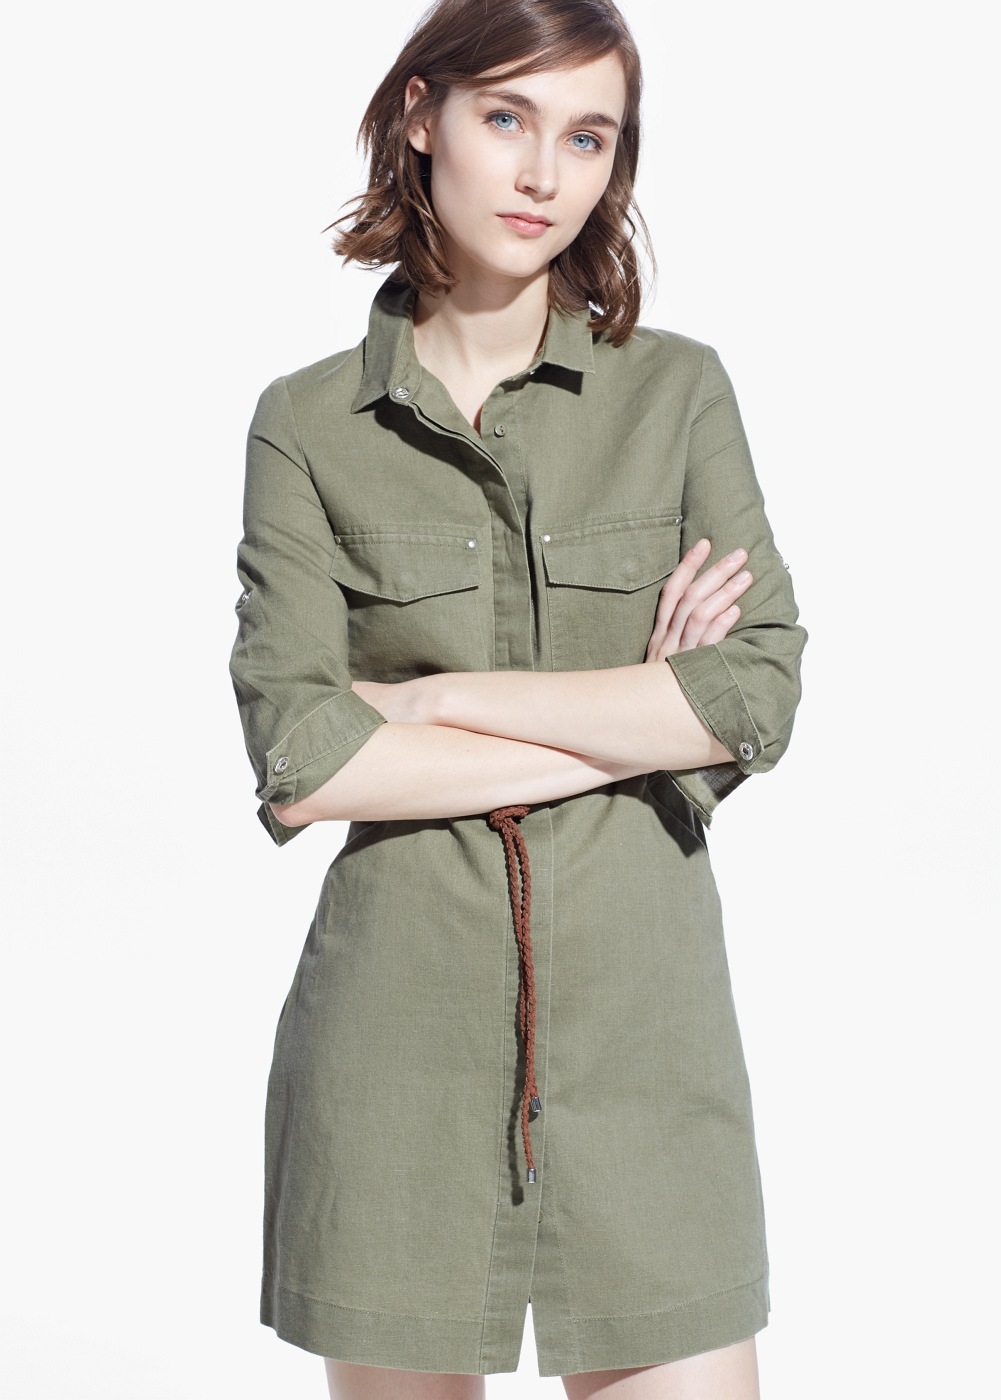 Khaki Spring Wearable Trends